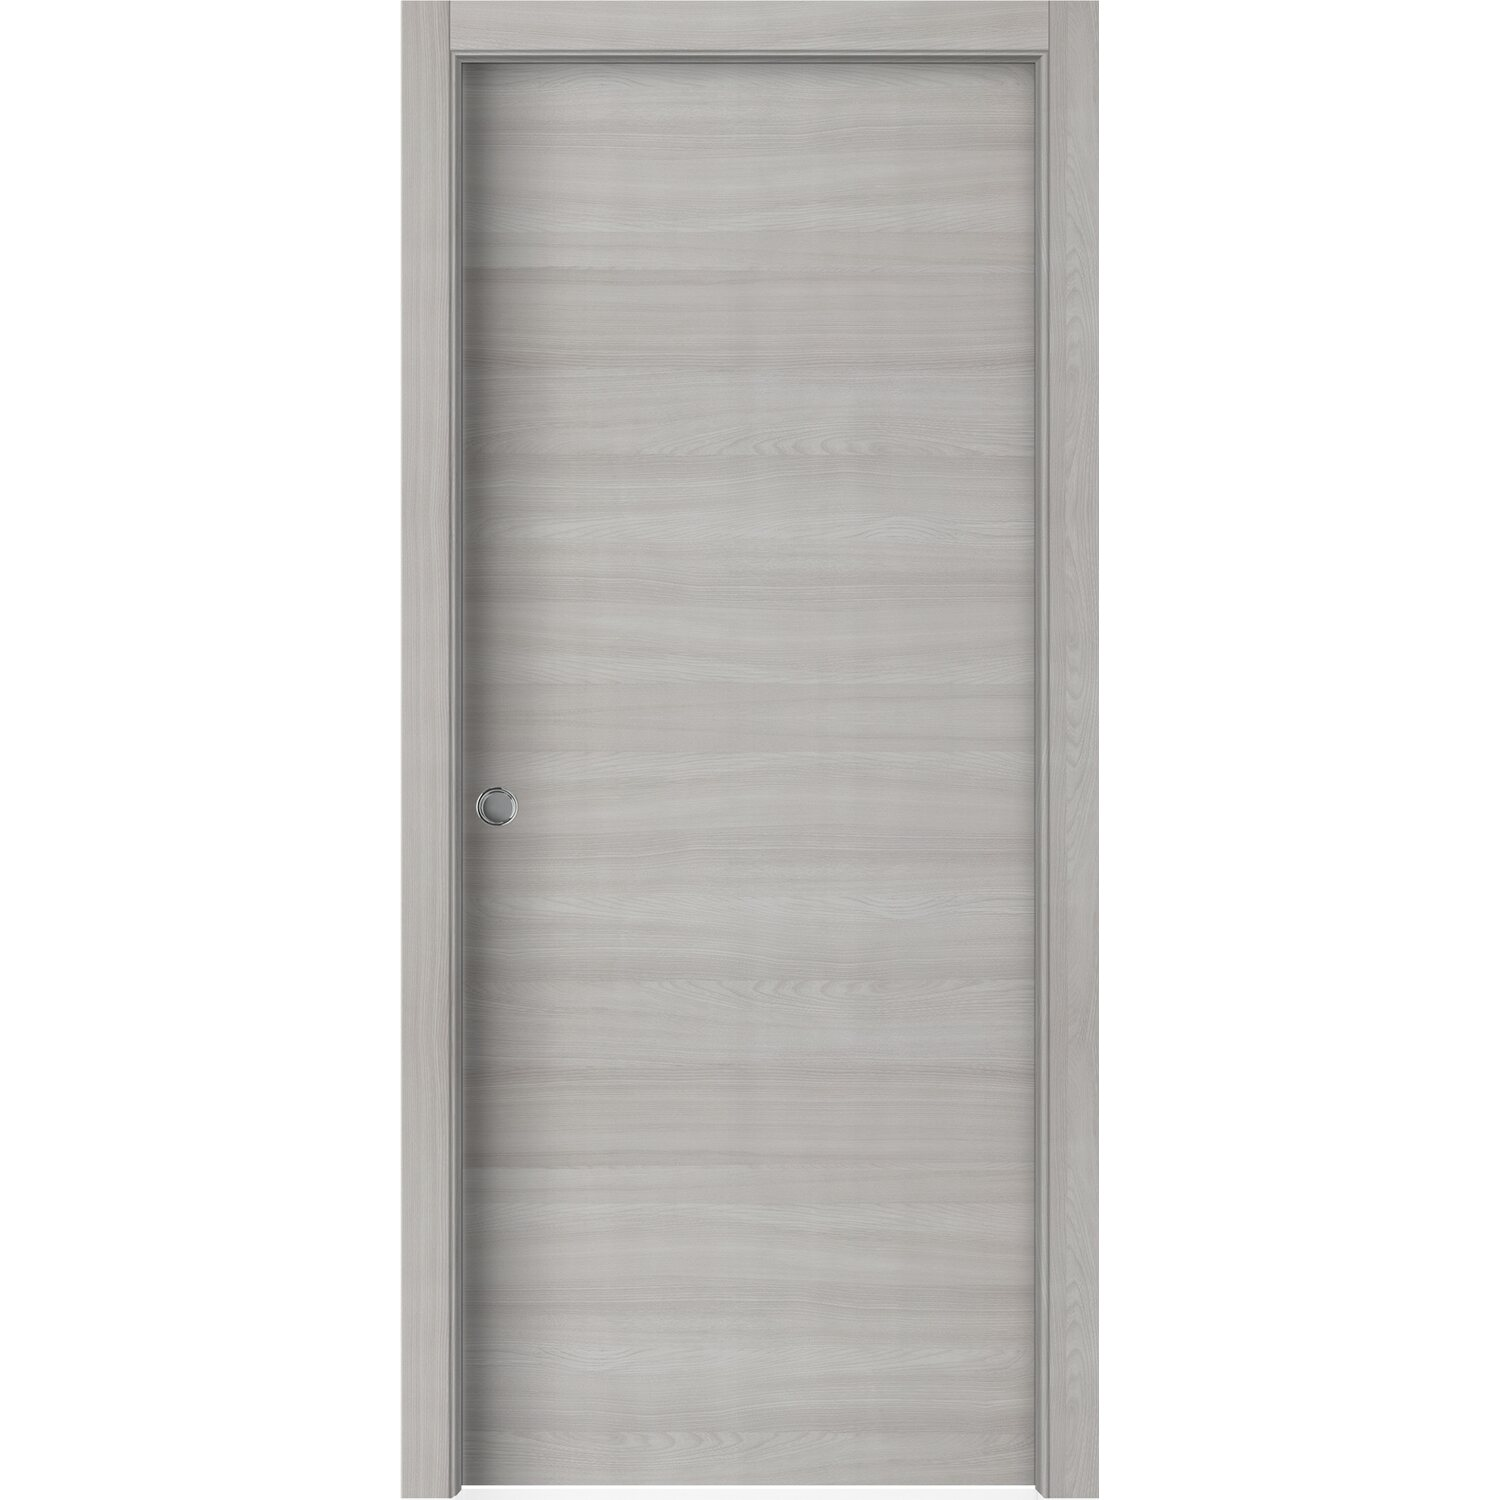 Best porte interne obi contemporary - Brico porte interne ...